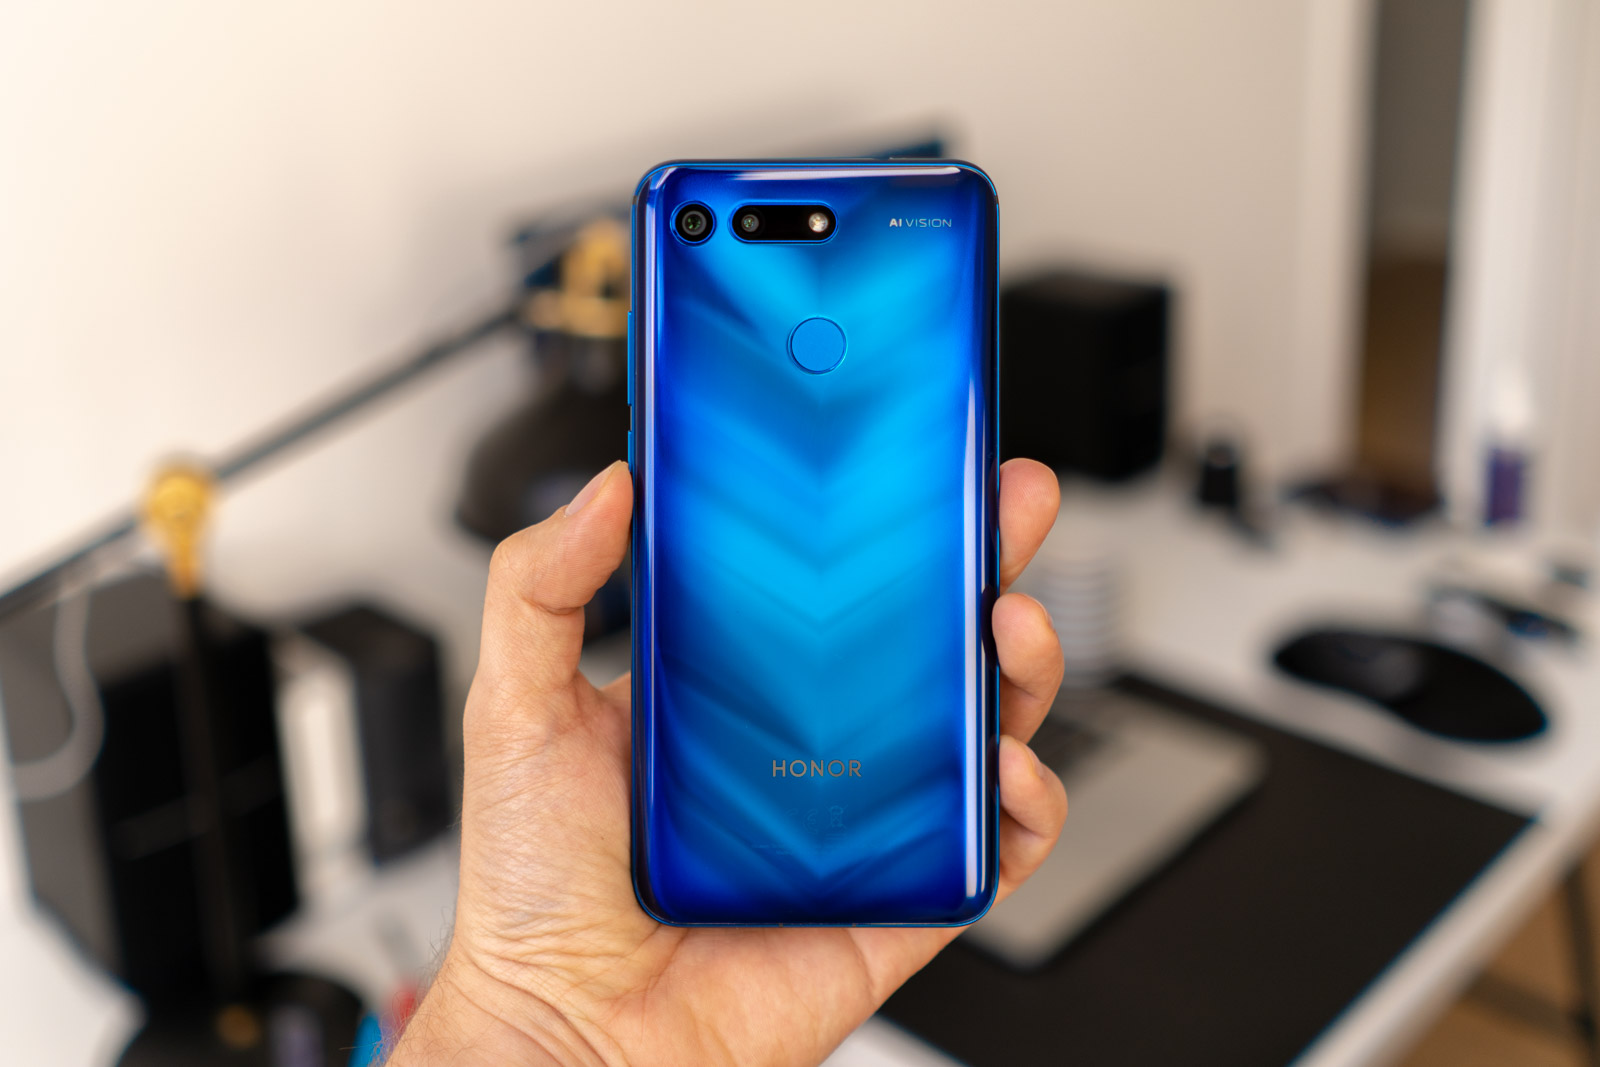 honor view 20 aparat recenzja